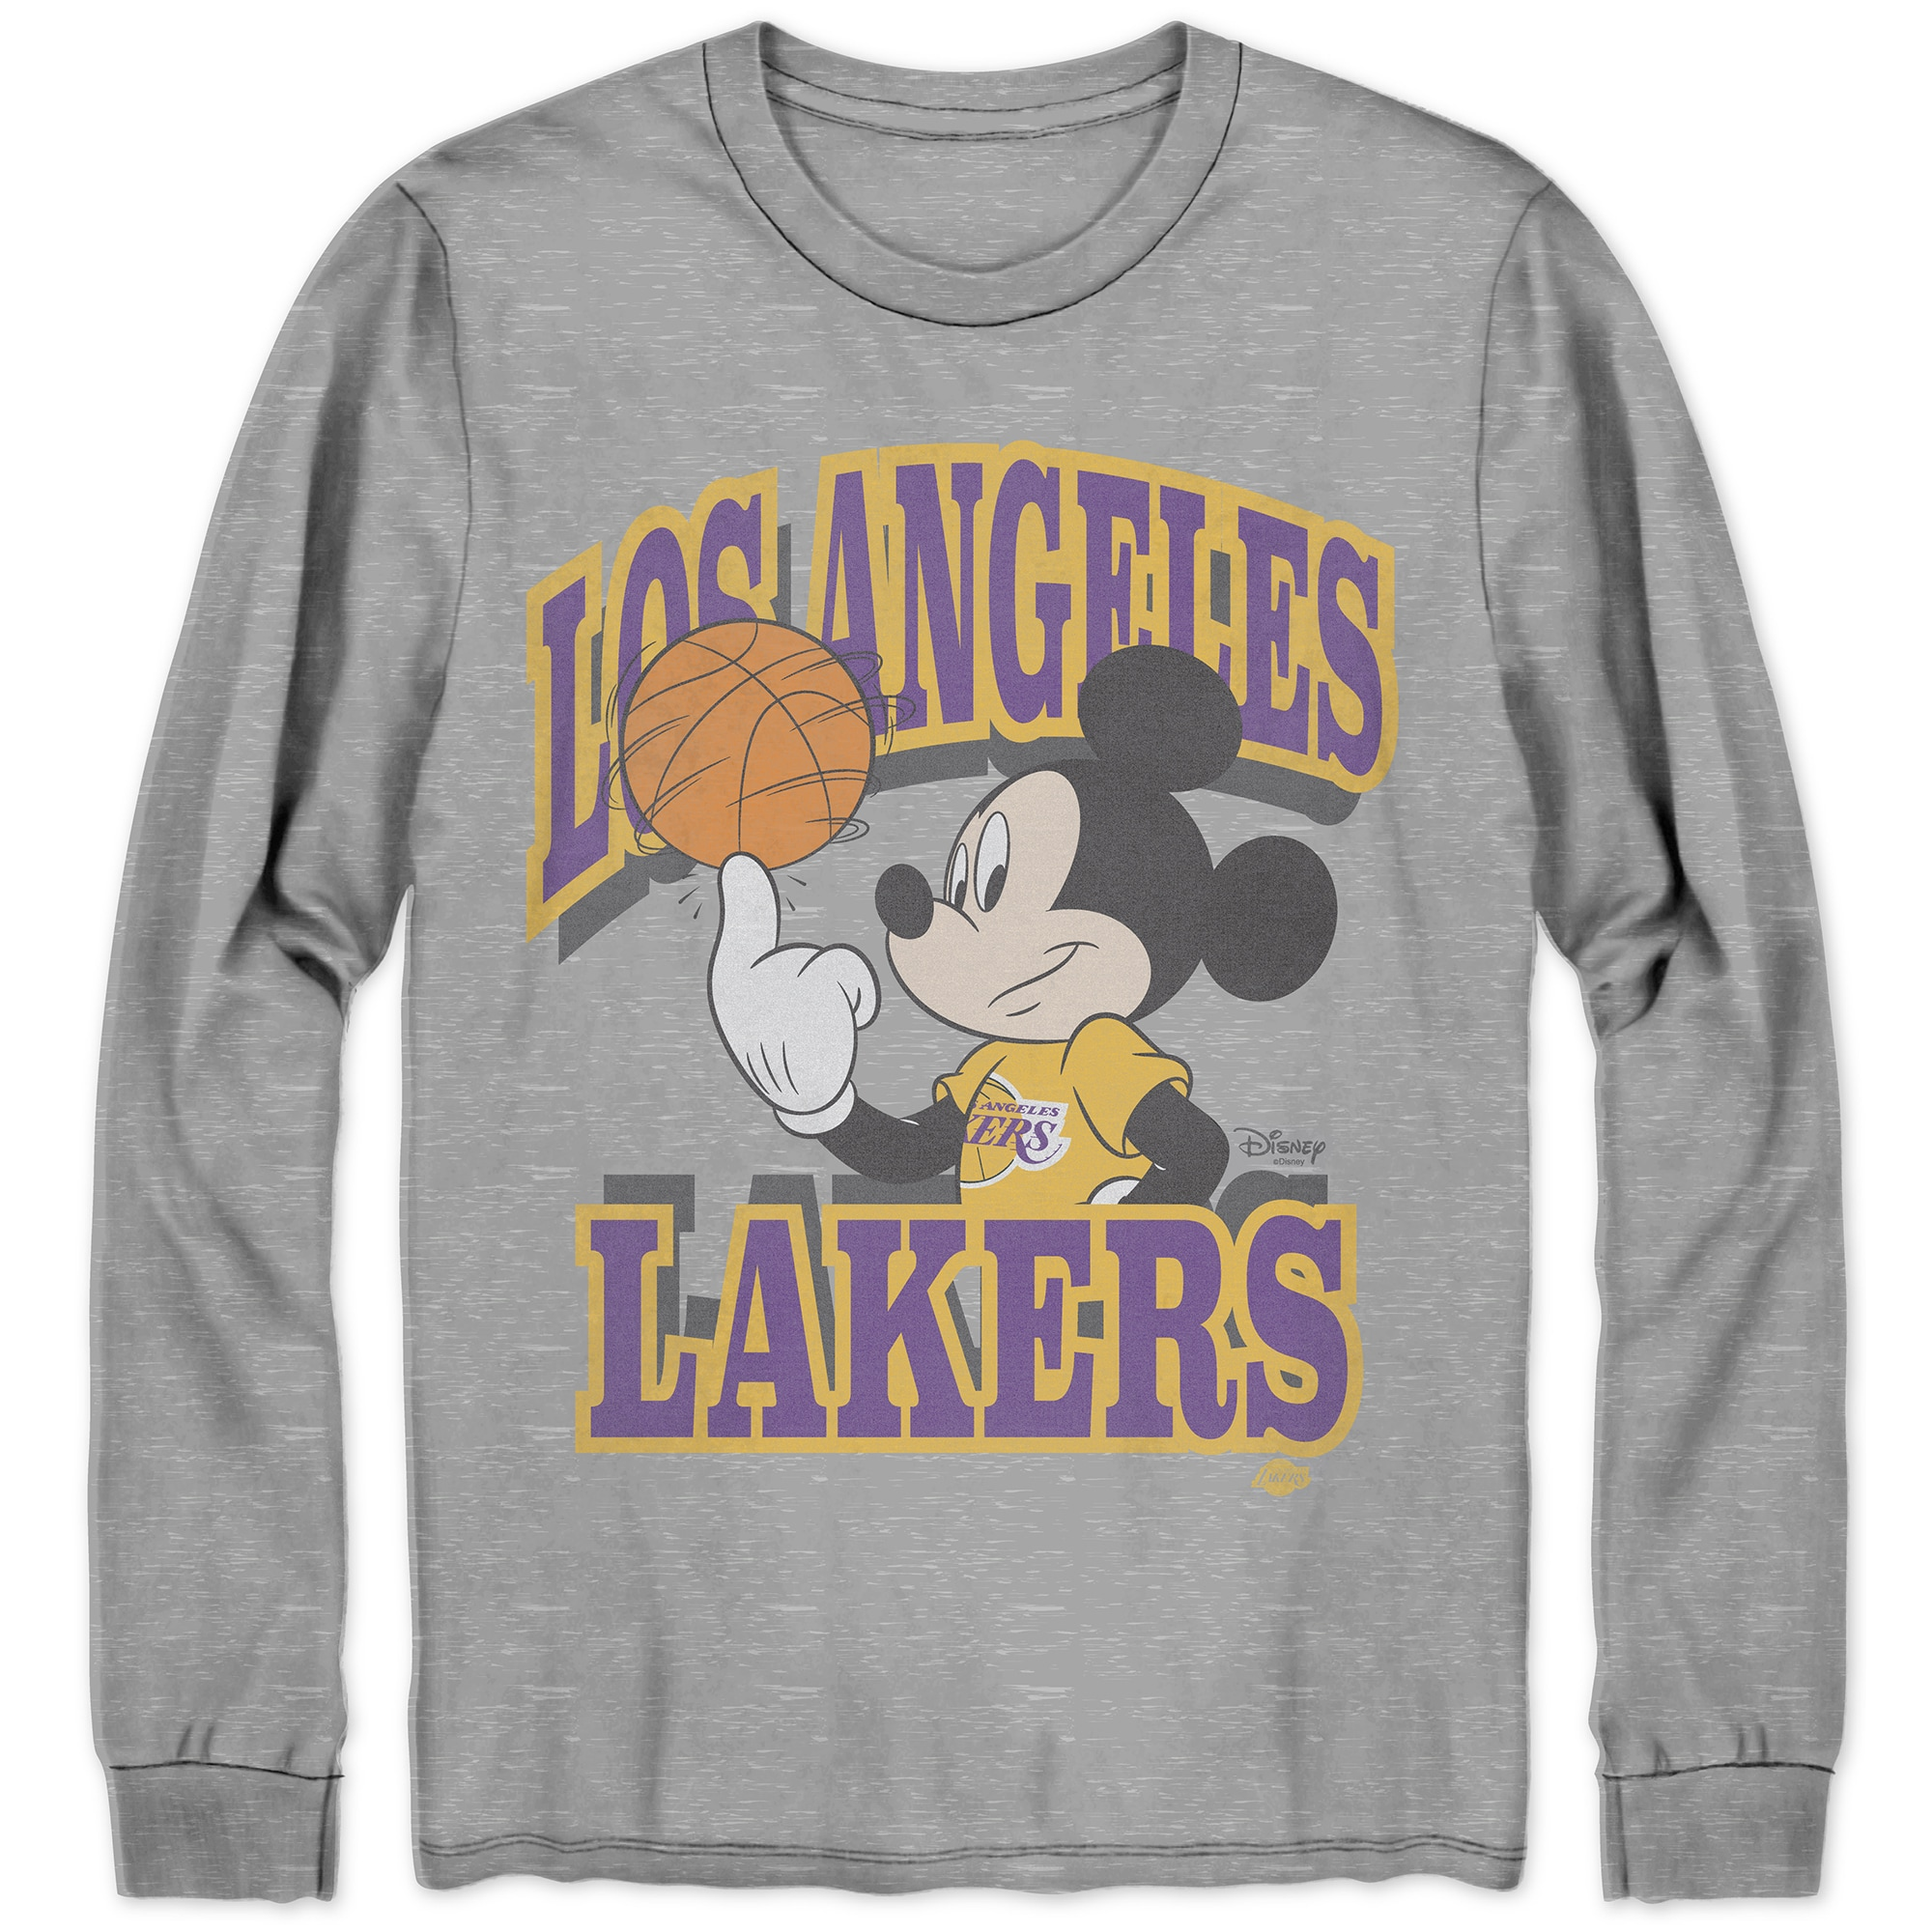 Los Angeles Lakers Junk Food Disney Mickey Team Spirit Long Sleeve T-Shirt - Gray